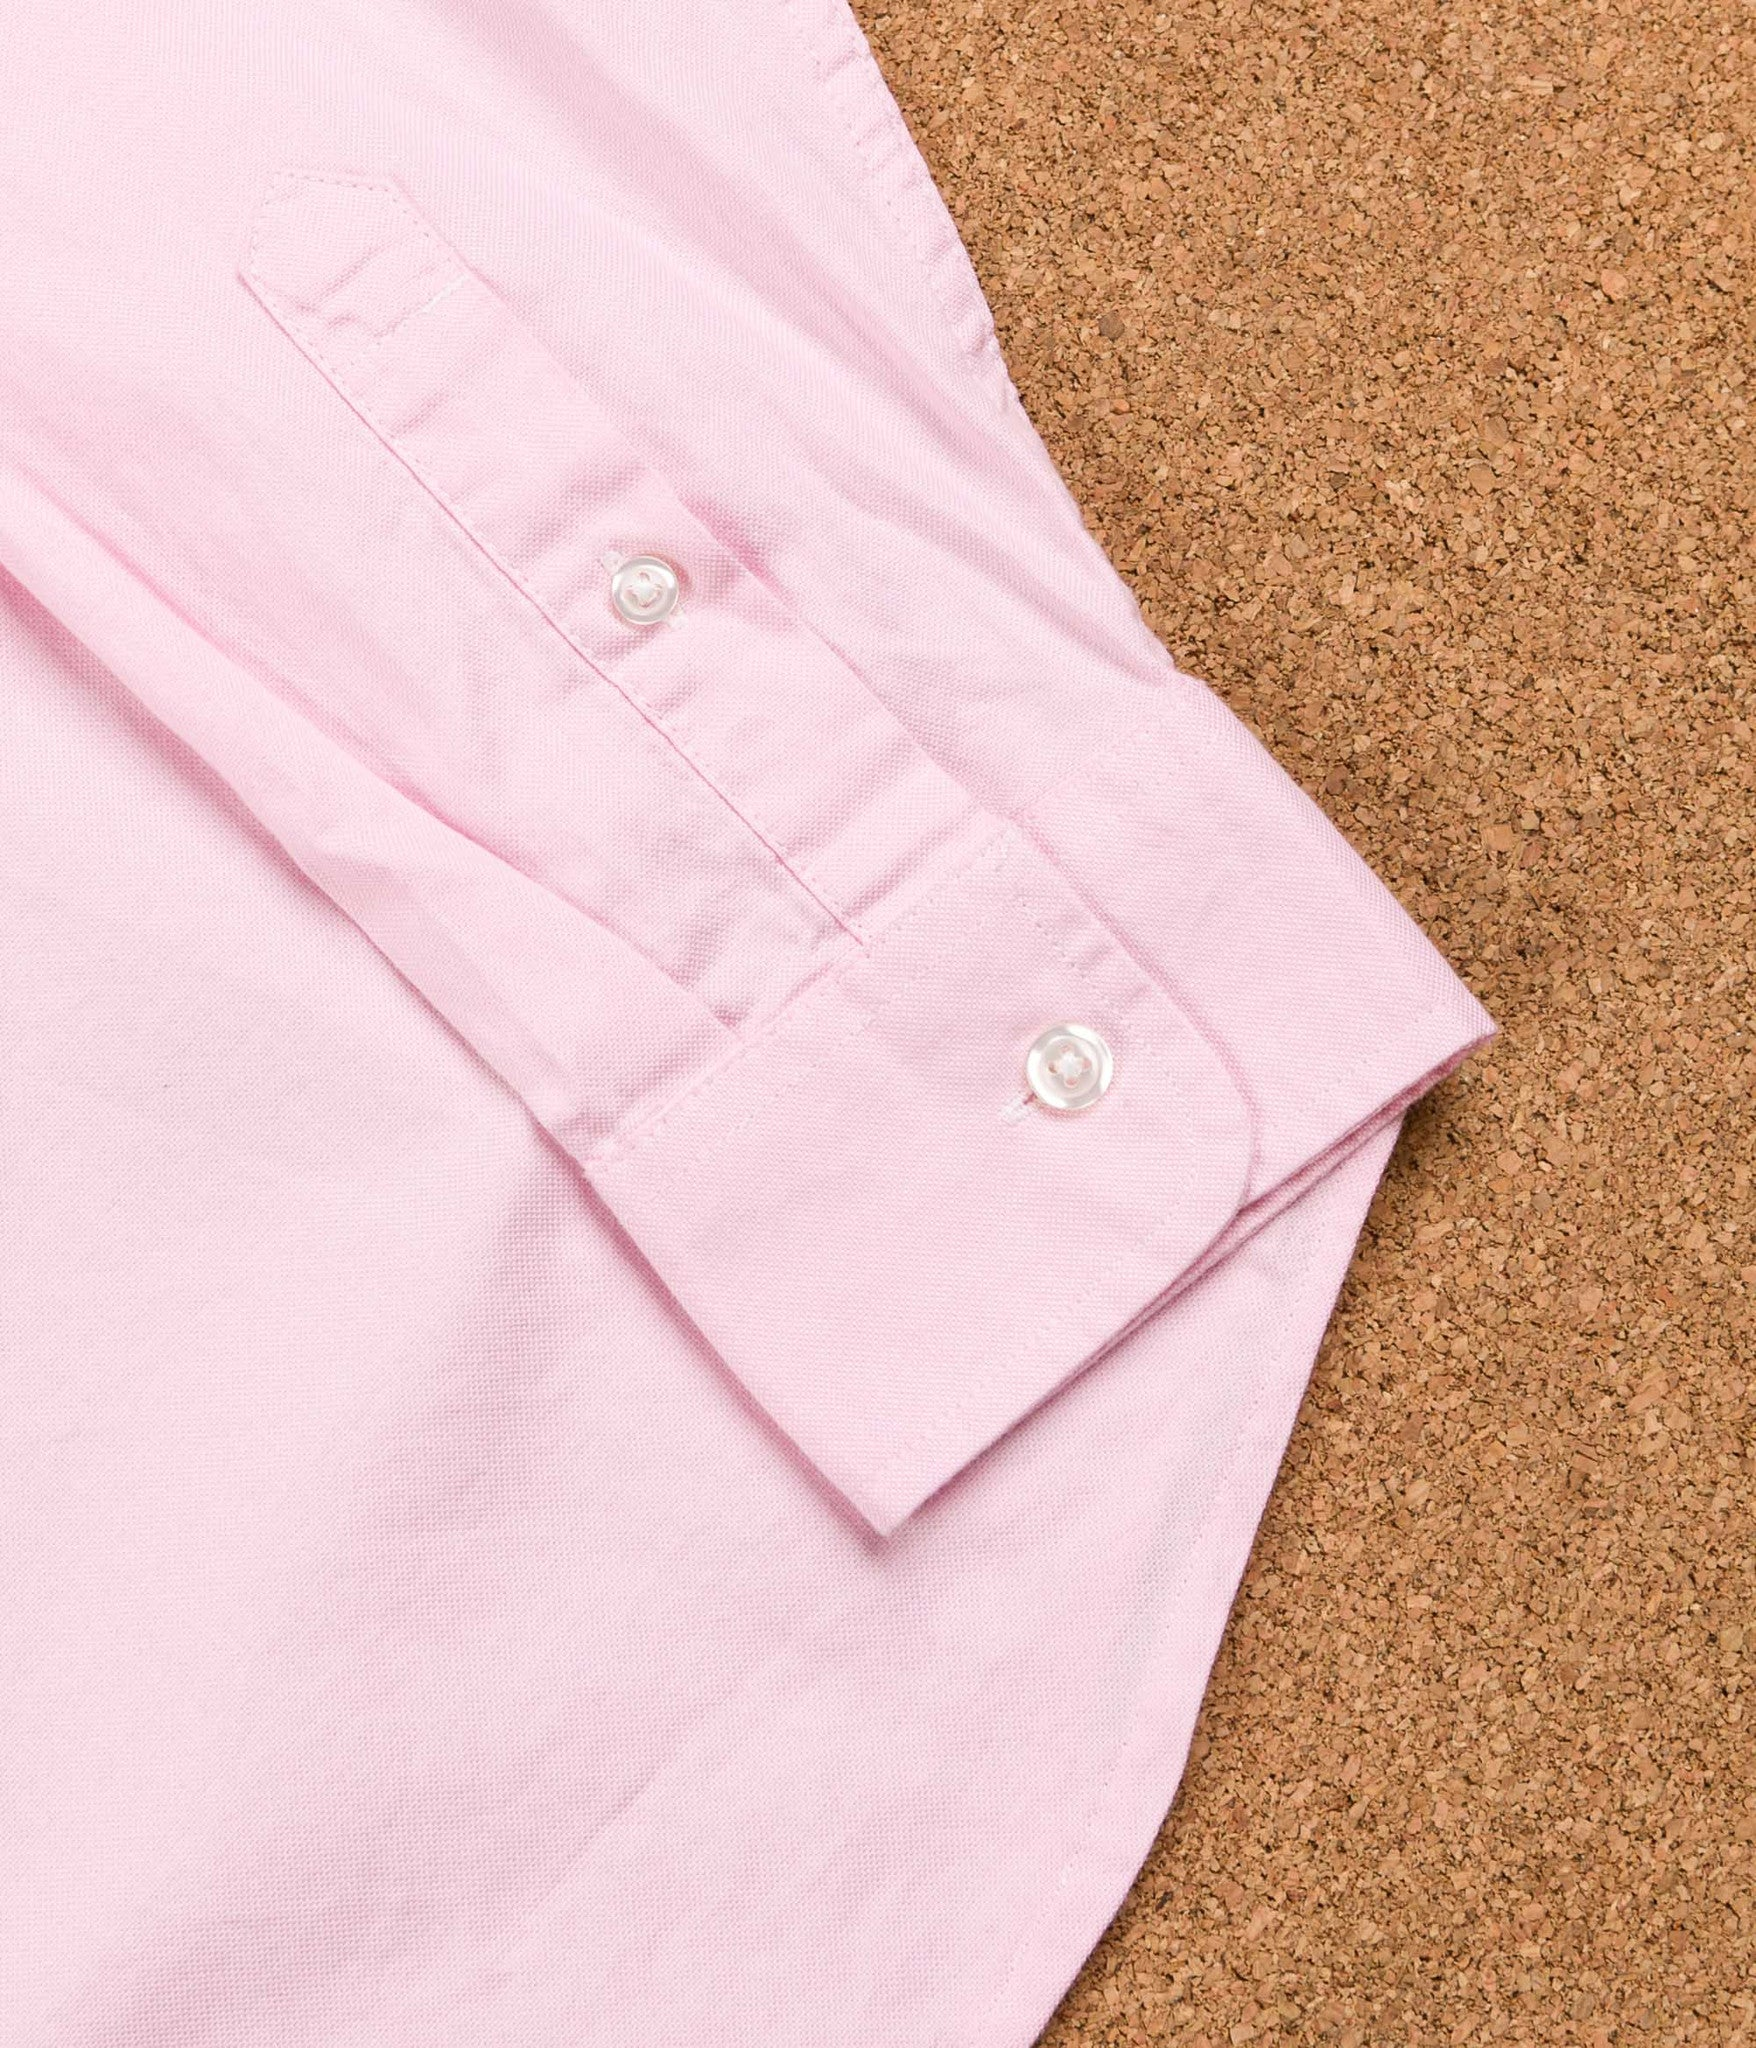 Carhartt Lancaster Long Sleeve Shirt - Vegas Pink / Wax